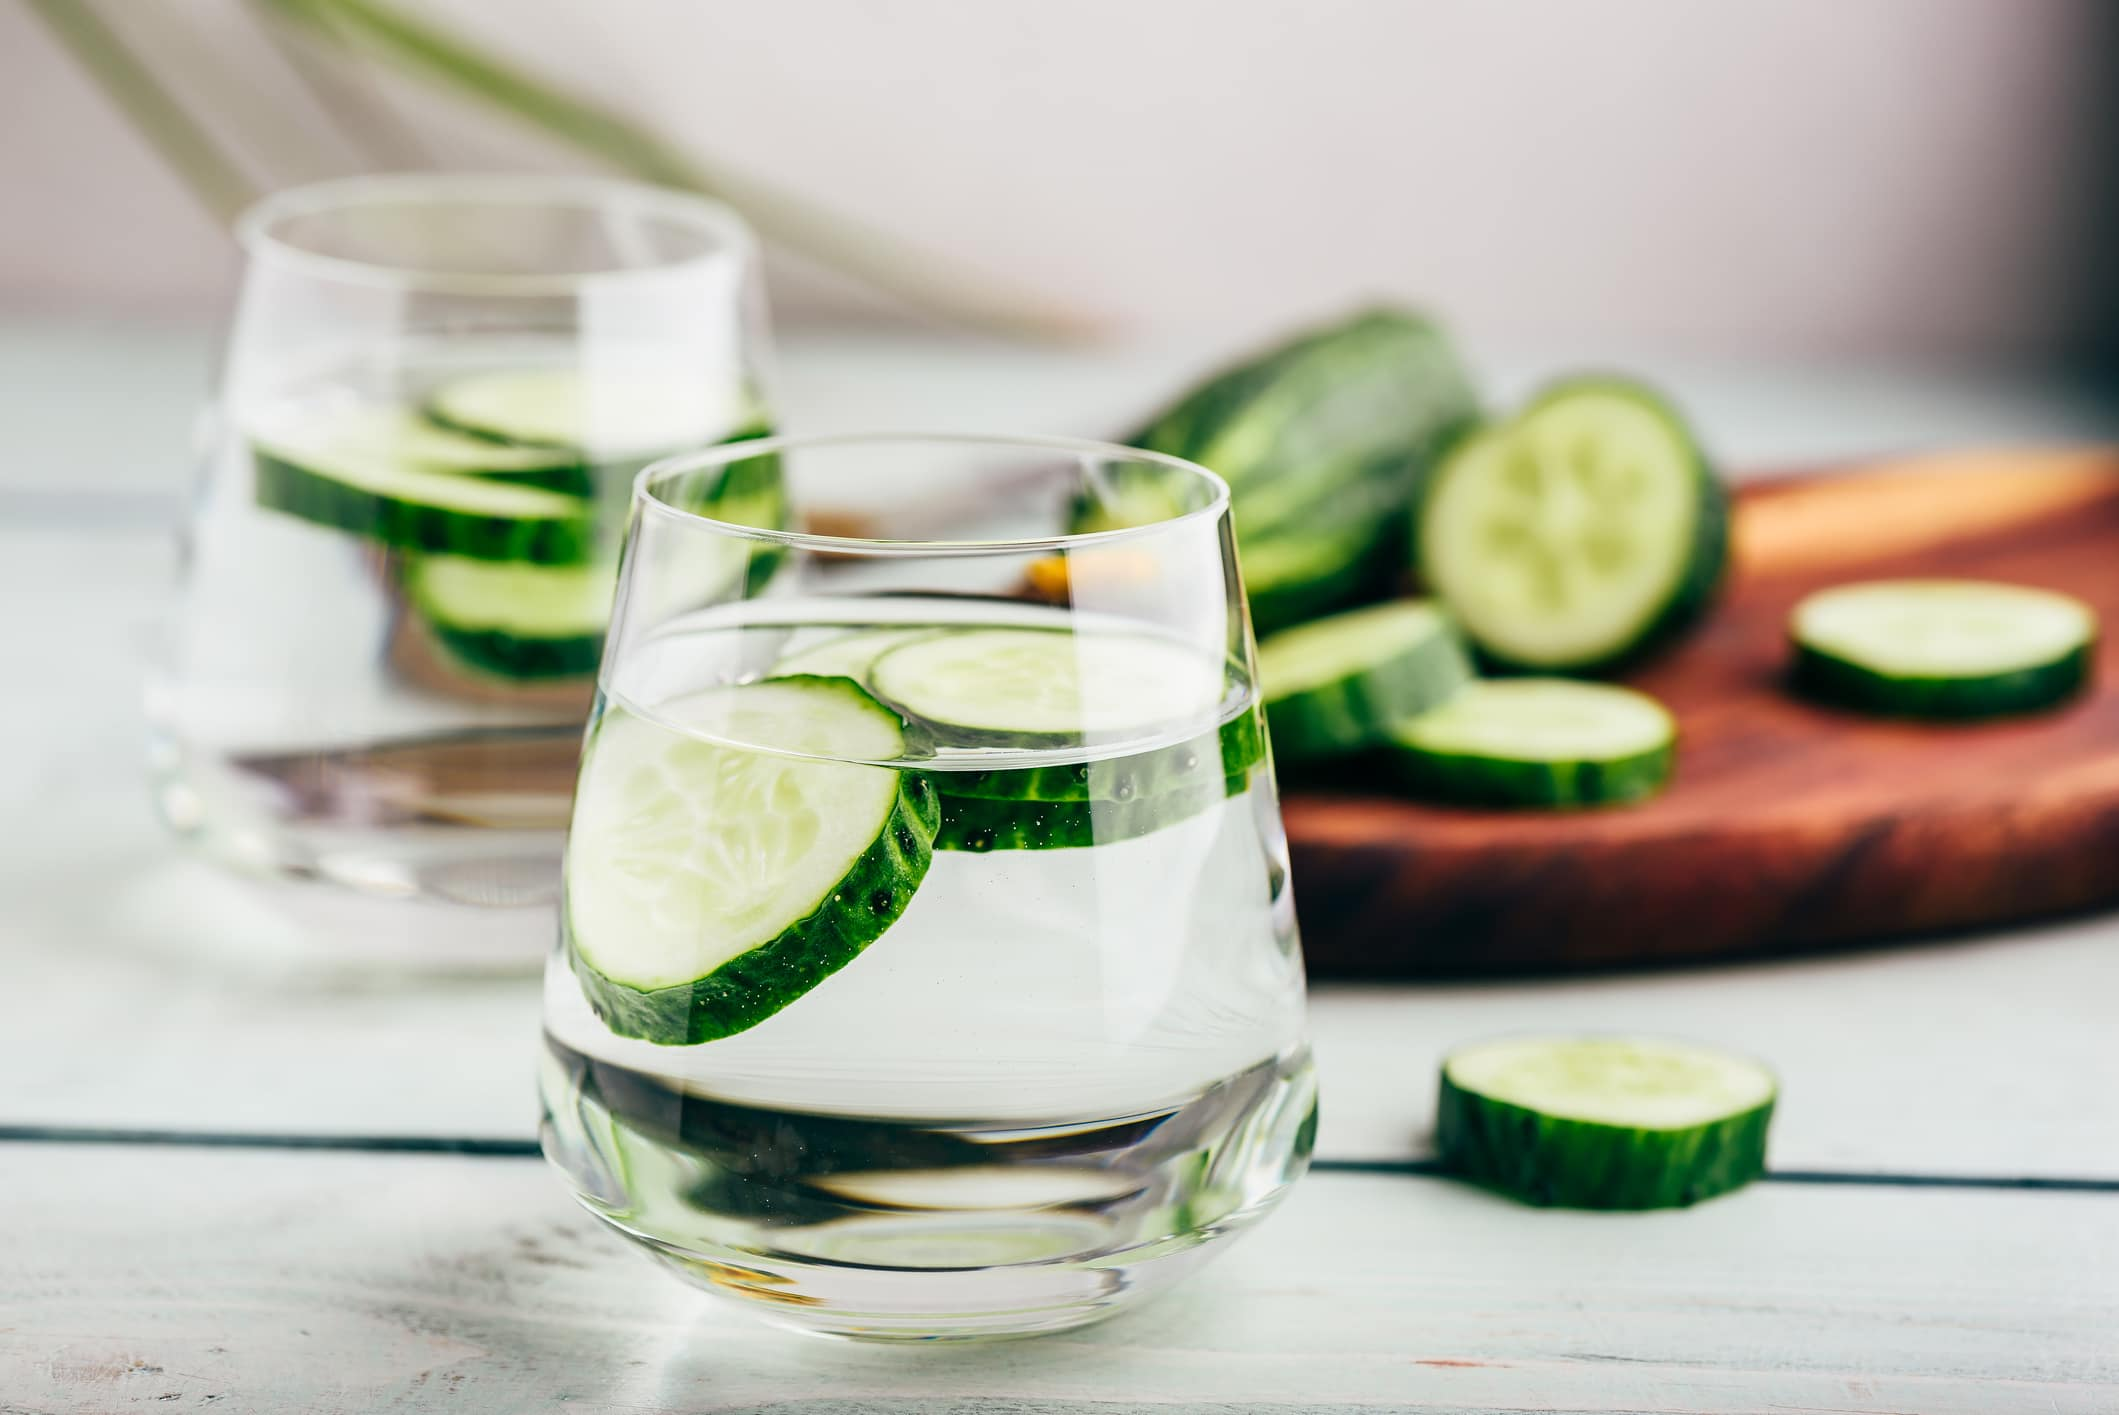 Water with cucumber in it illustrating health benefits of cucumber water.